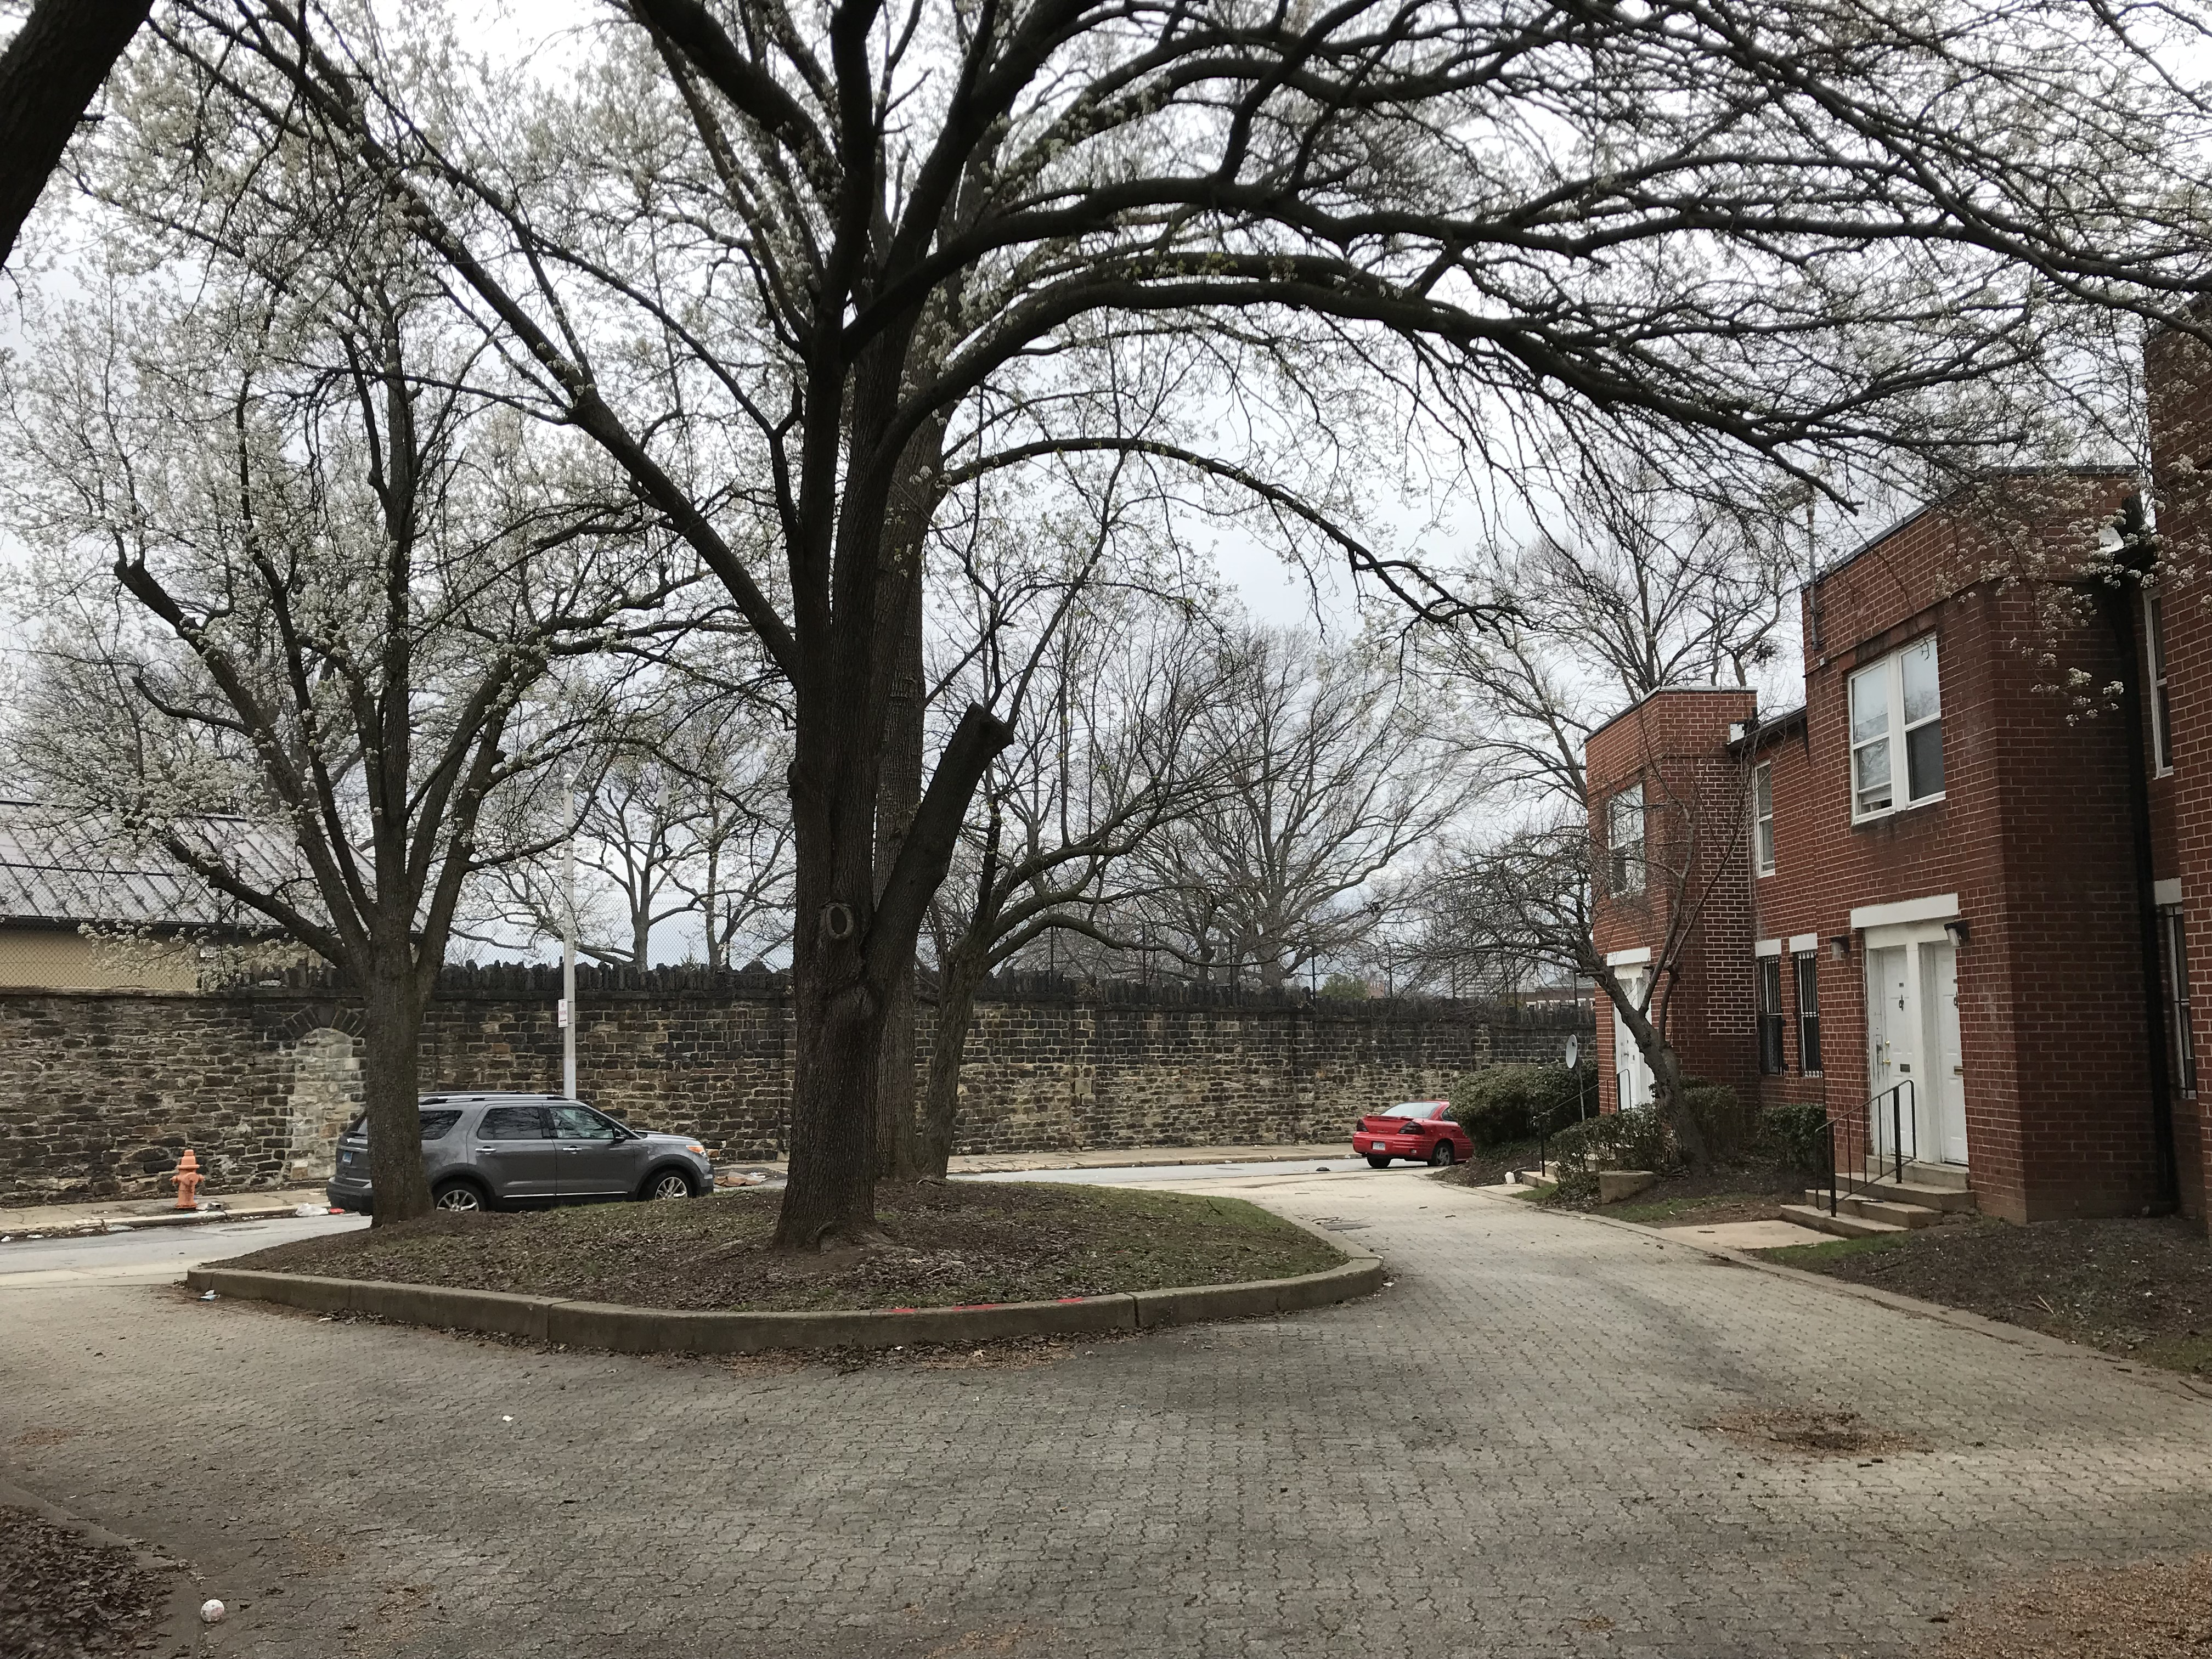 EastView Place townhouses and open space near Holbrook Street and E. Lanvale Street (bounded by Ensor Street and Aisquith Street), Baltimore, MD 21202, Aisquith Street, Baltimore, Building, Car, HQ Photo